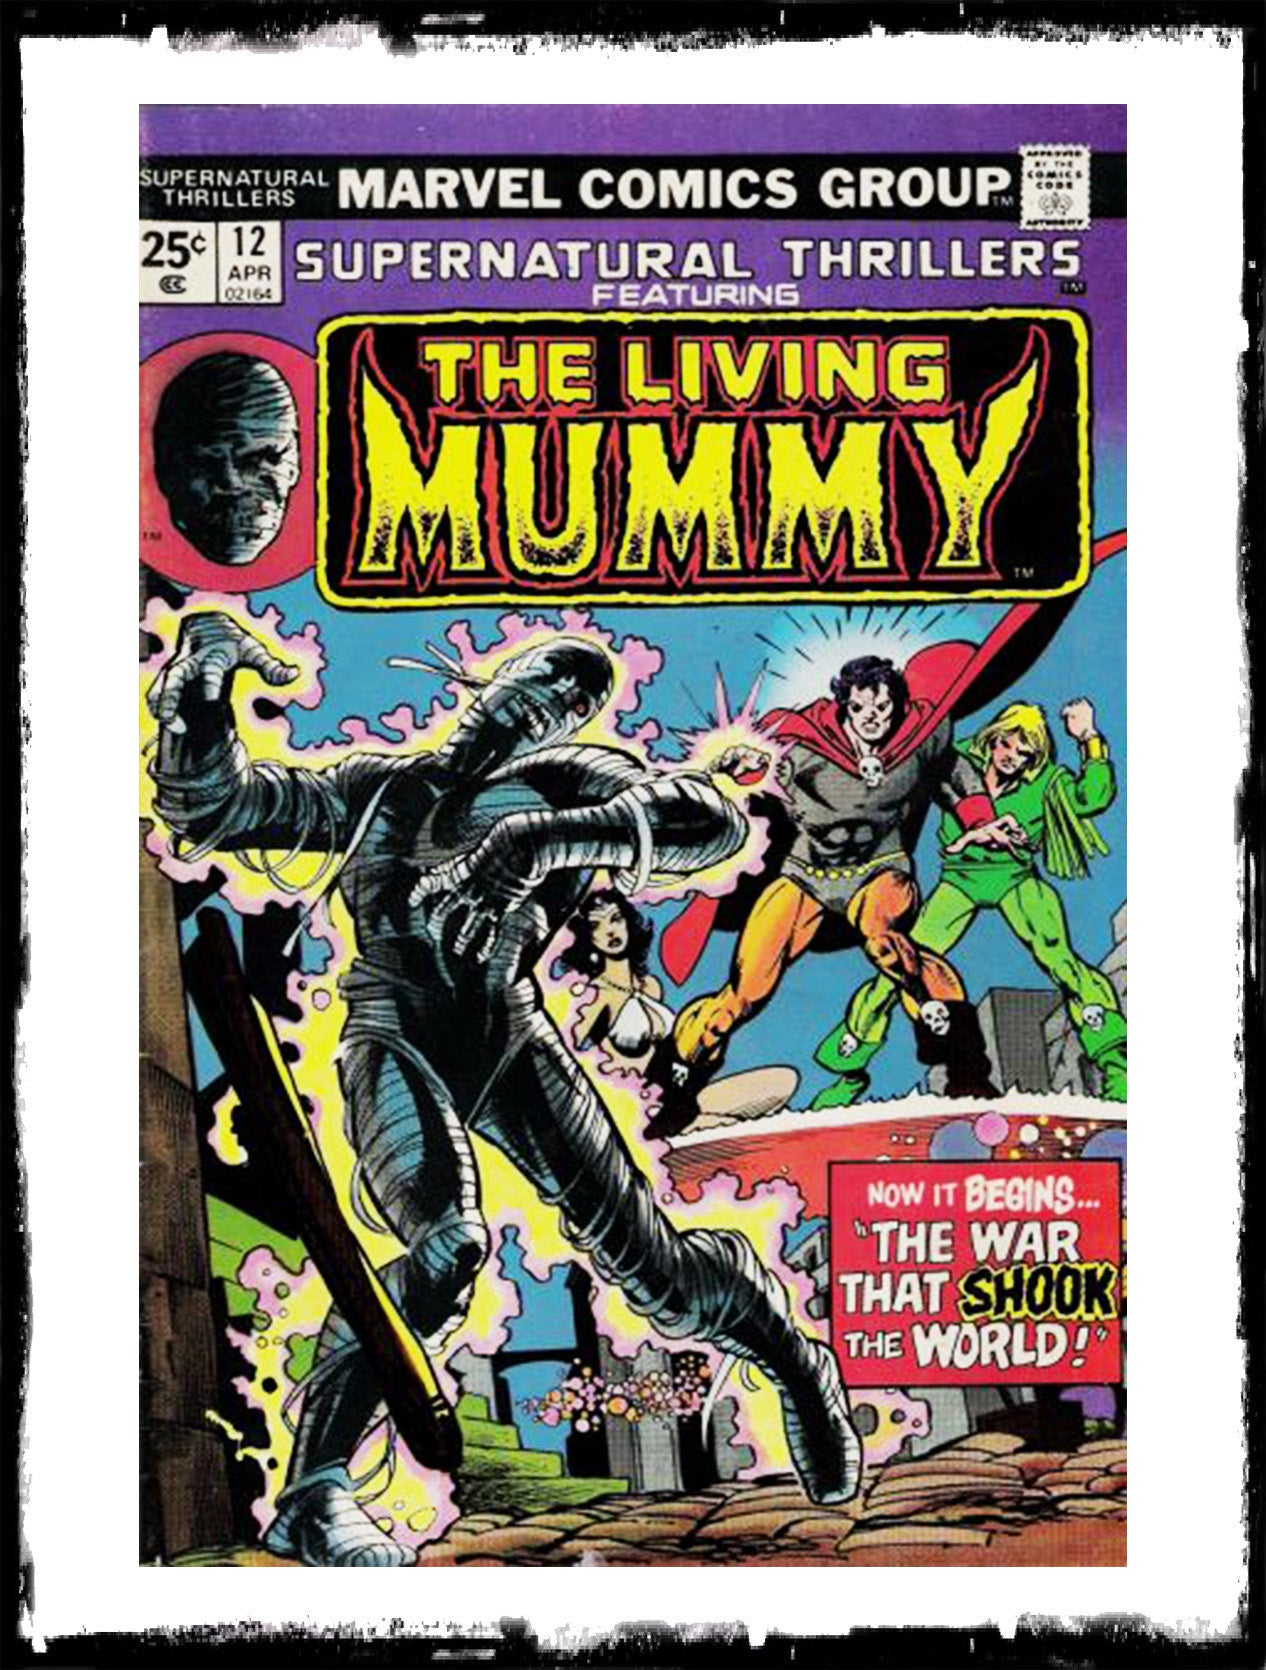 SUPERNATURAL THRILLERS FEAT THE LIVING MUMMY - #12 (1975 - VF+)